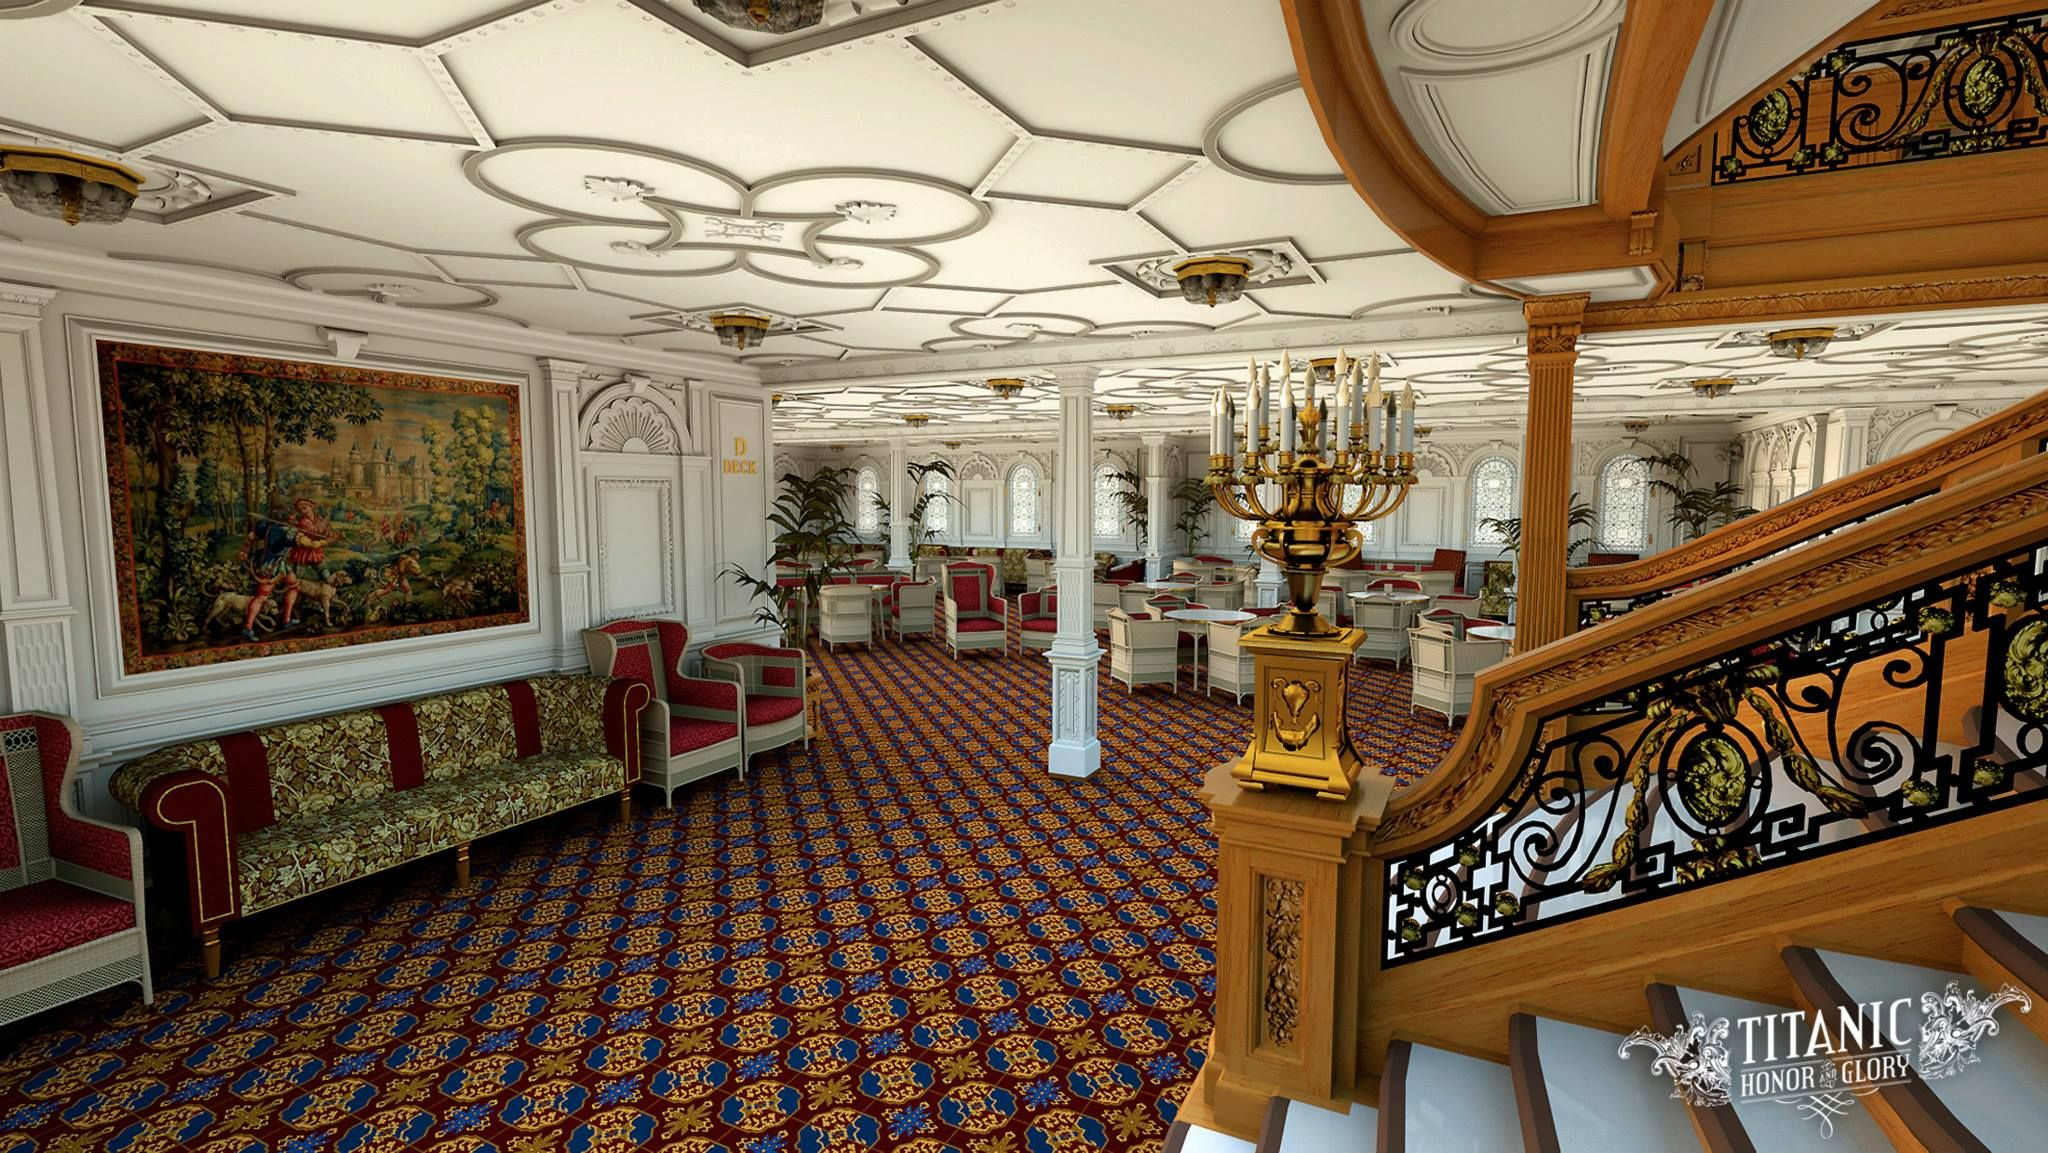 Inside The Lavish Replica Of Titanic Which Is Due To Sail In 2018